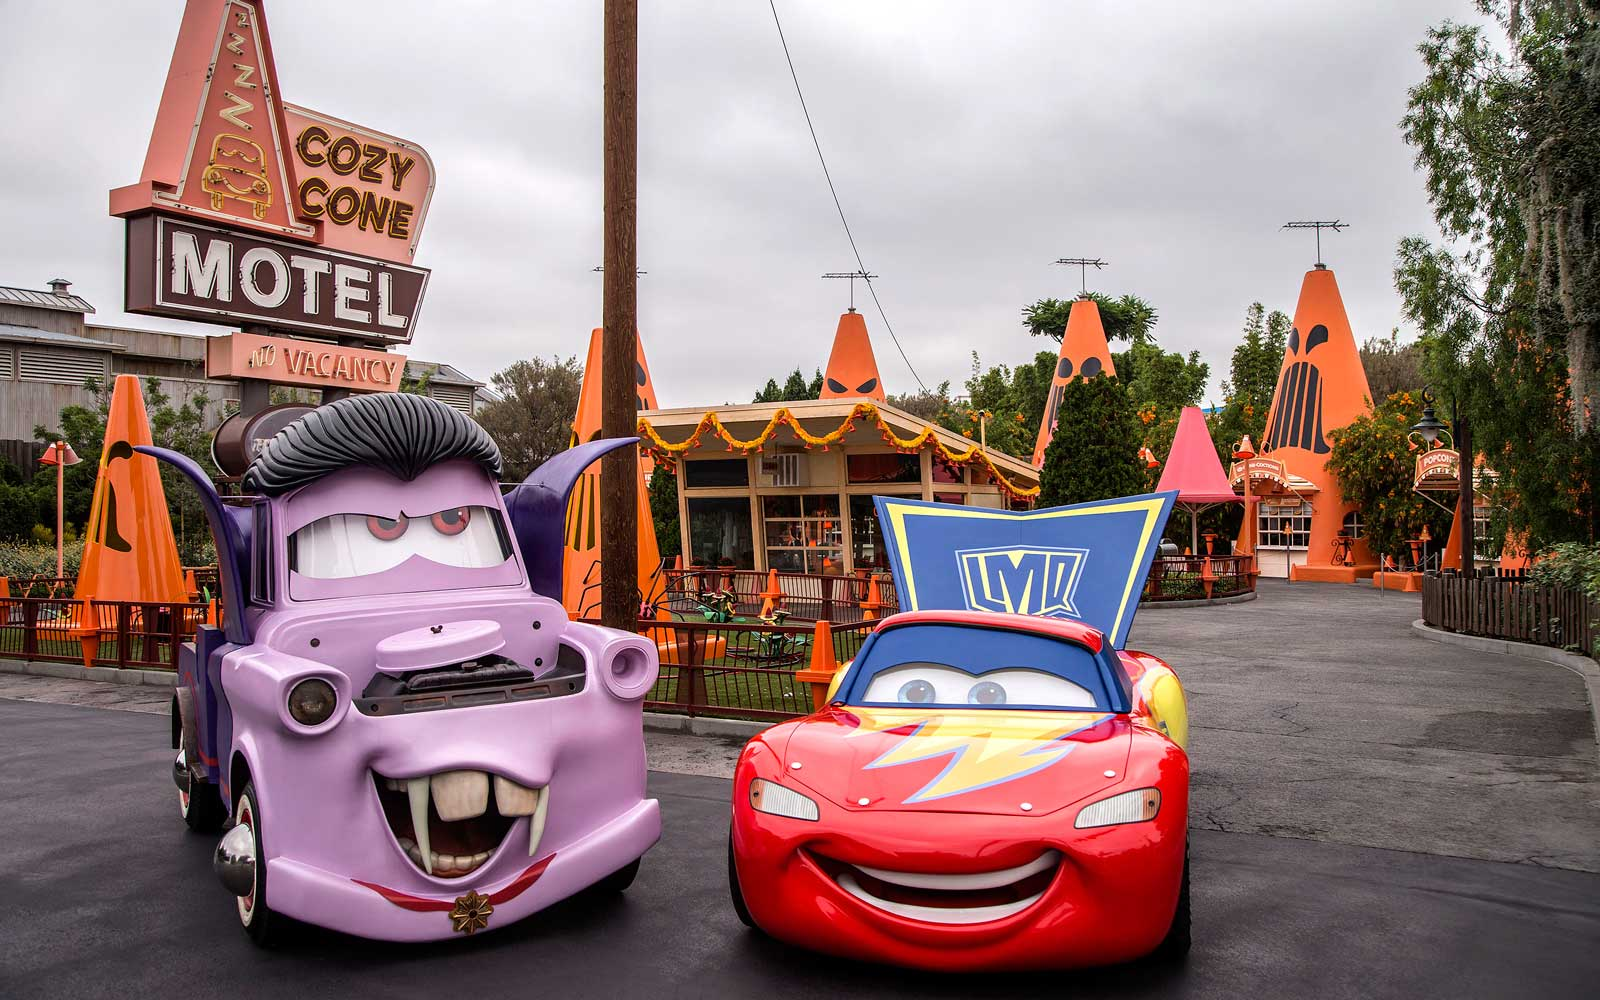 The Disneyland Halloween Transformation Has All Kinds of New Surprises